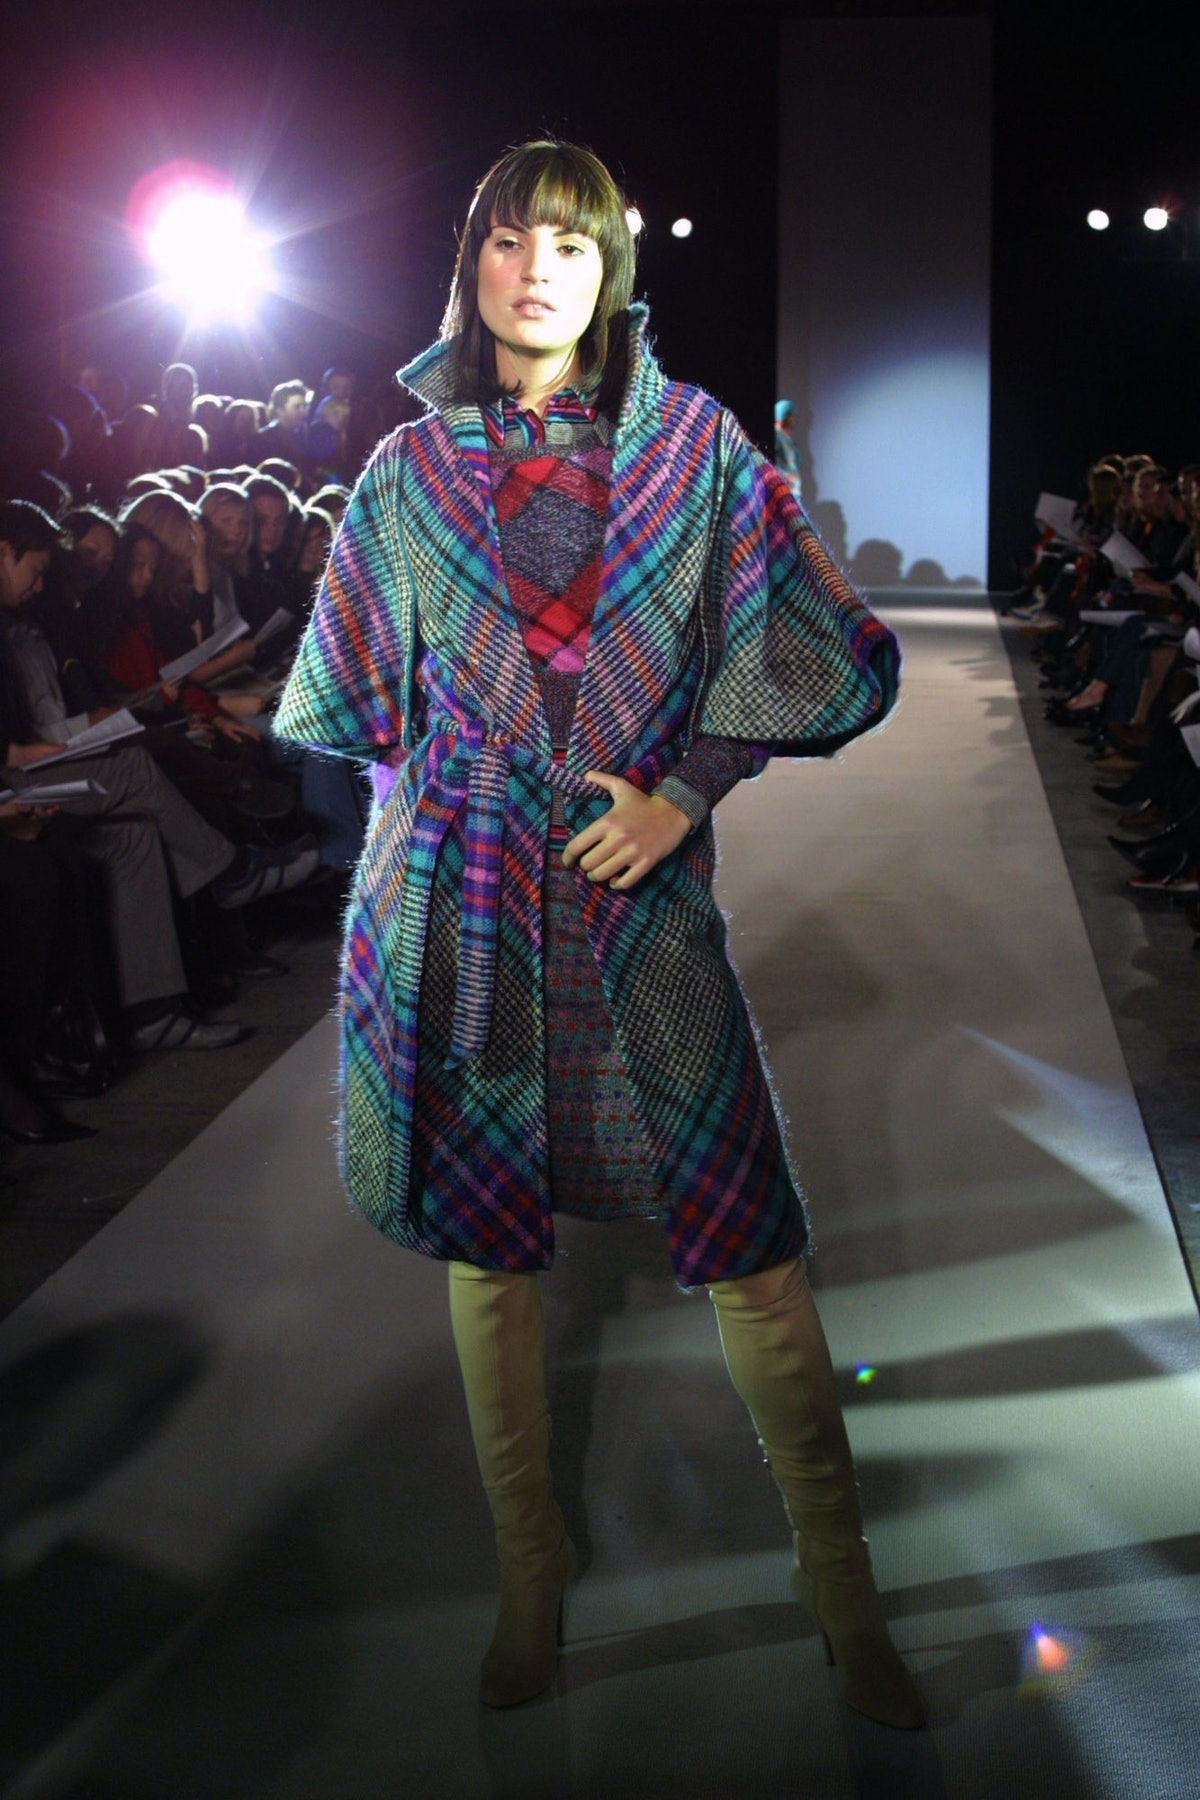 Missoni / Fashion in Motion at the V&A